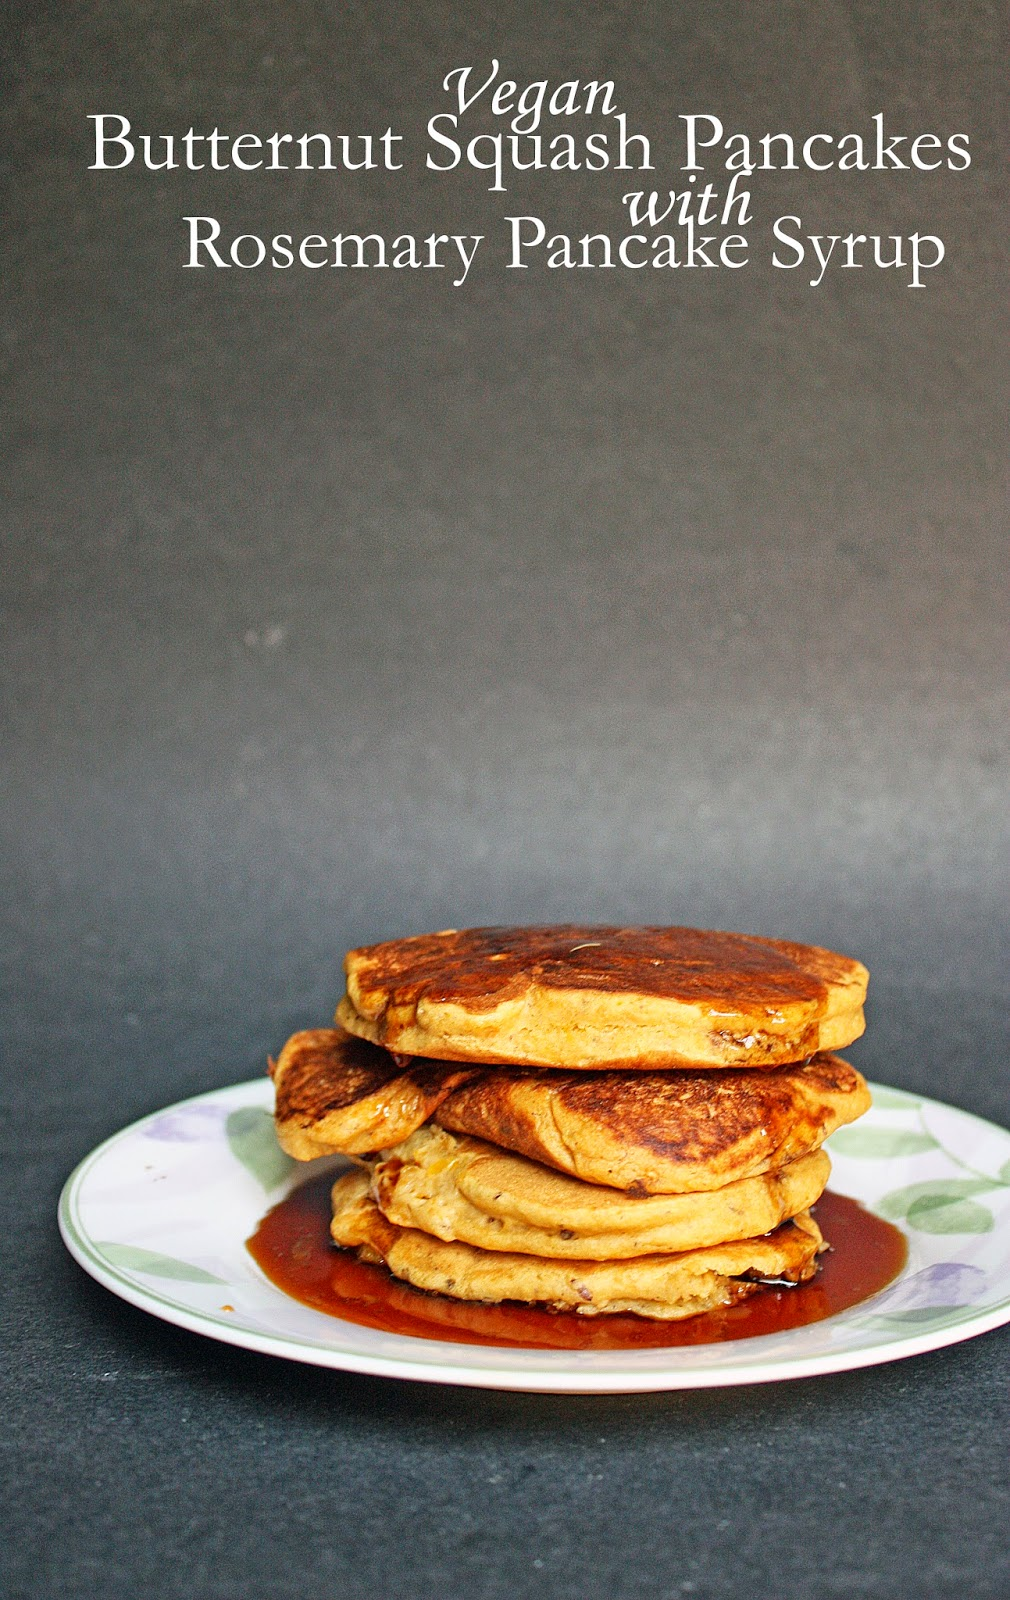 vegan butternut squash pancakes with rosemary syrup